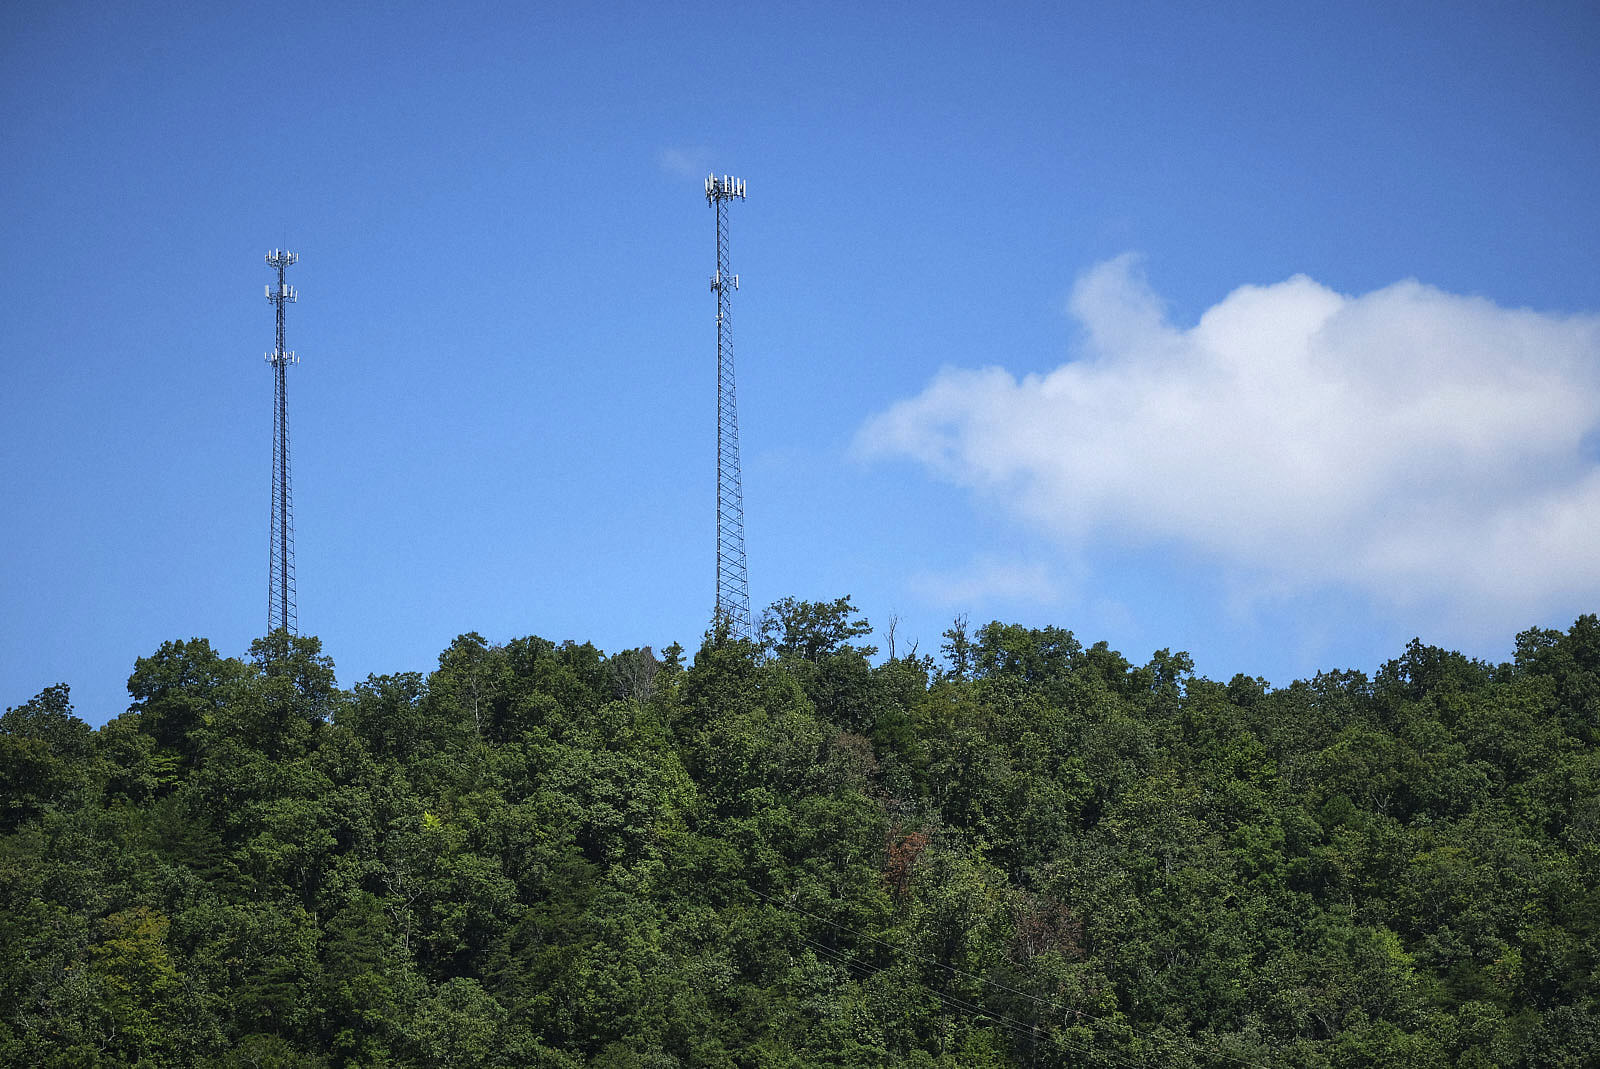 A wireless internet transmitter on the right cell tower beams data to subscribers in Whitesburg, Kentucky. Photo by Shawn Poynter/Daily Yonder